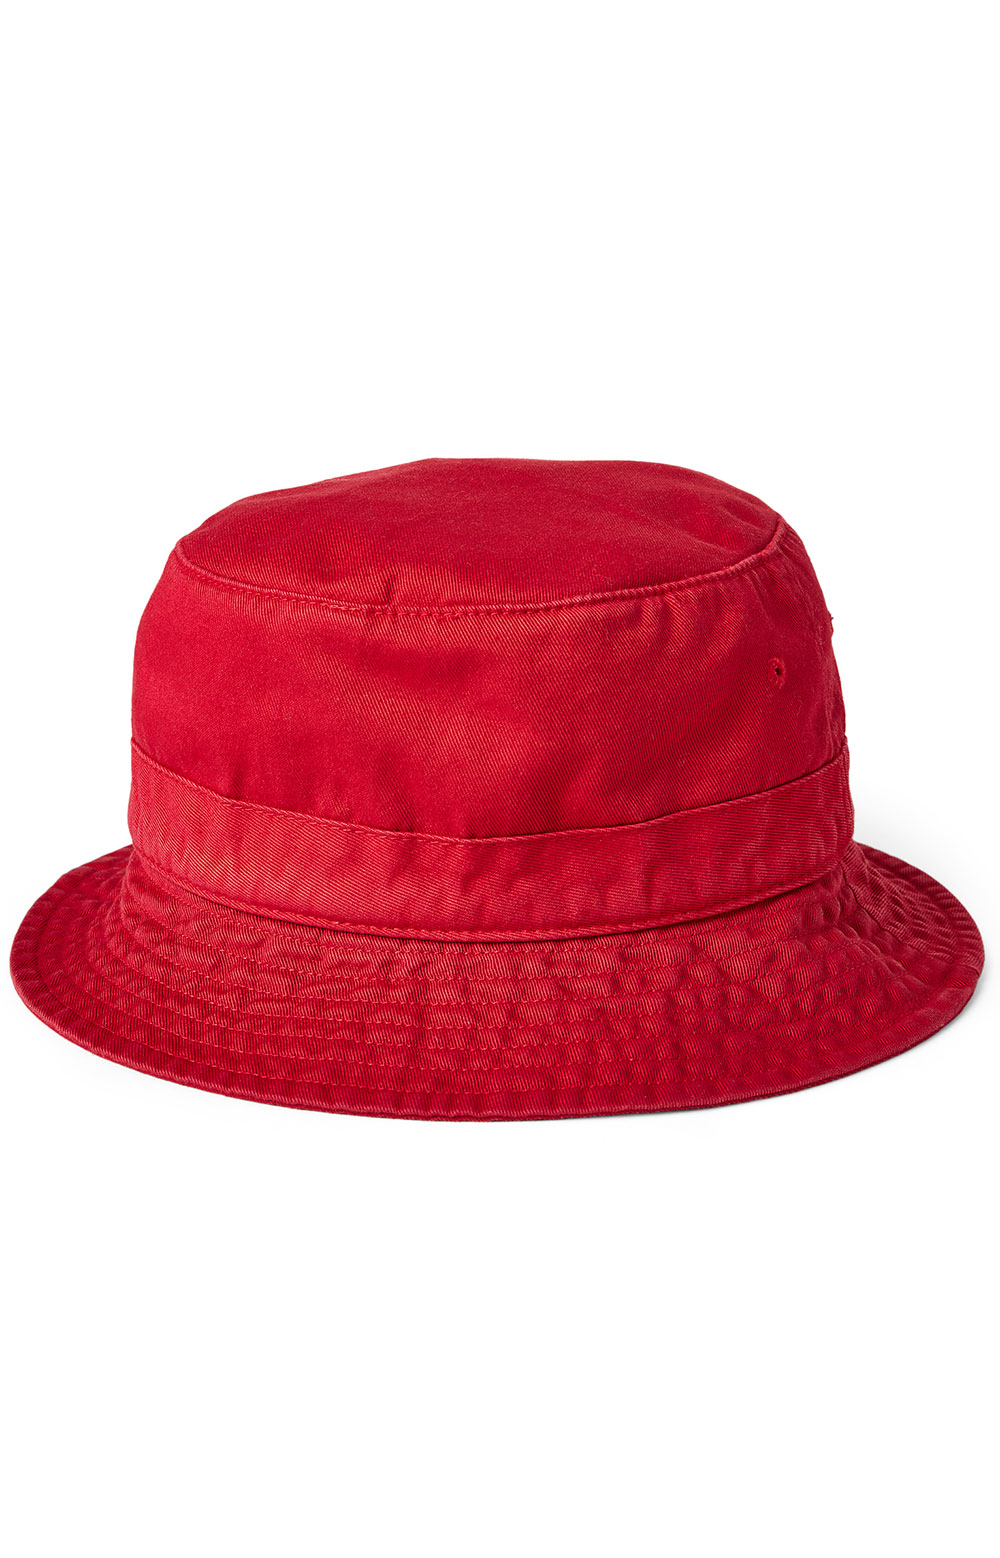 Polo Bear Chino Bucket Hat - Red 2